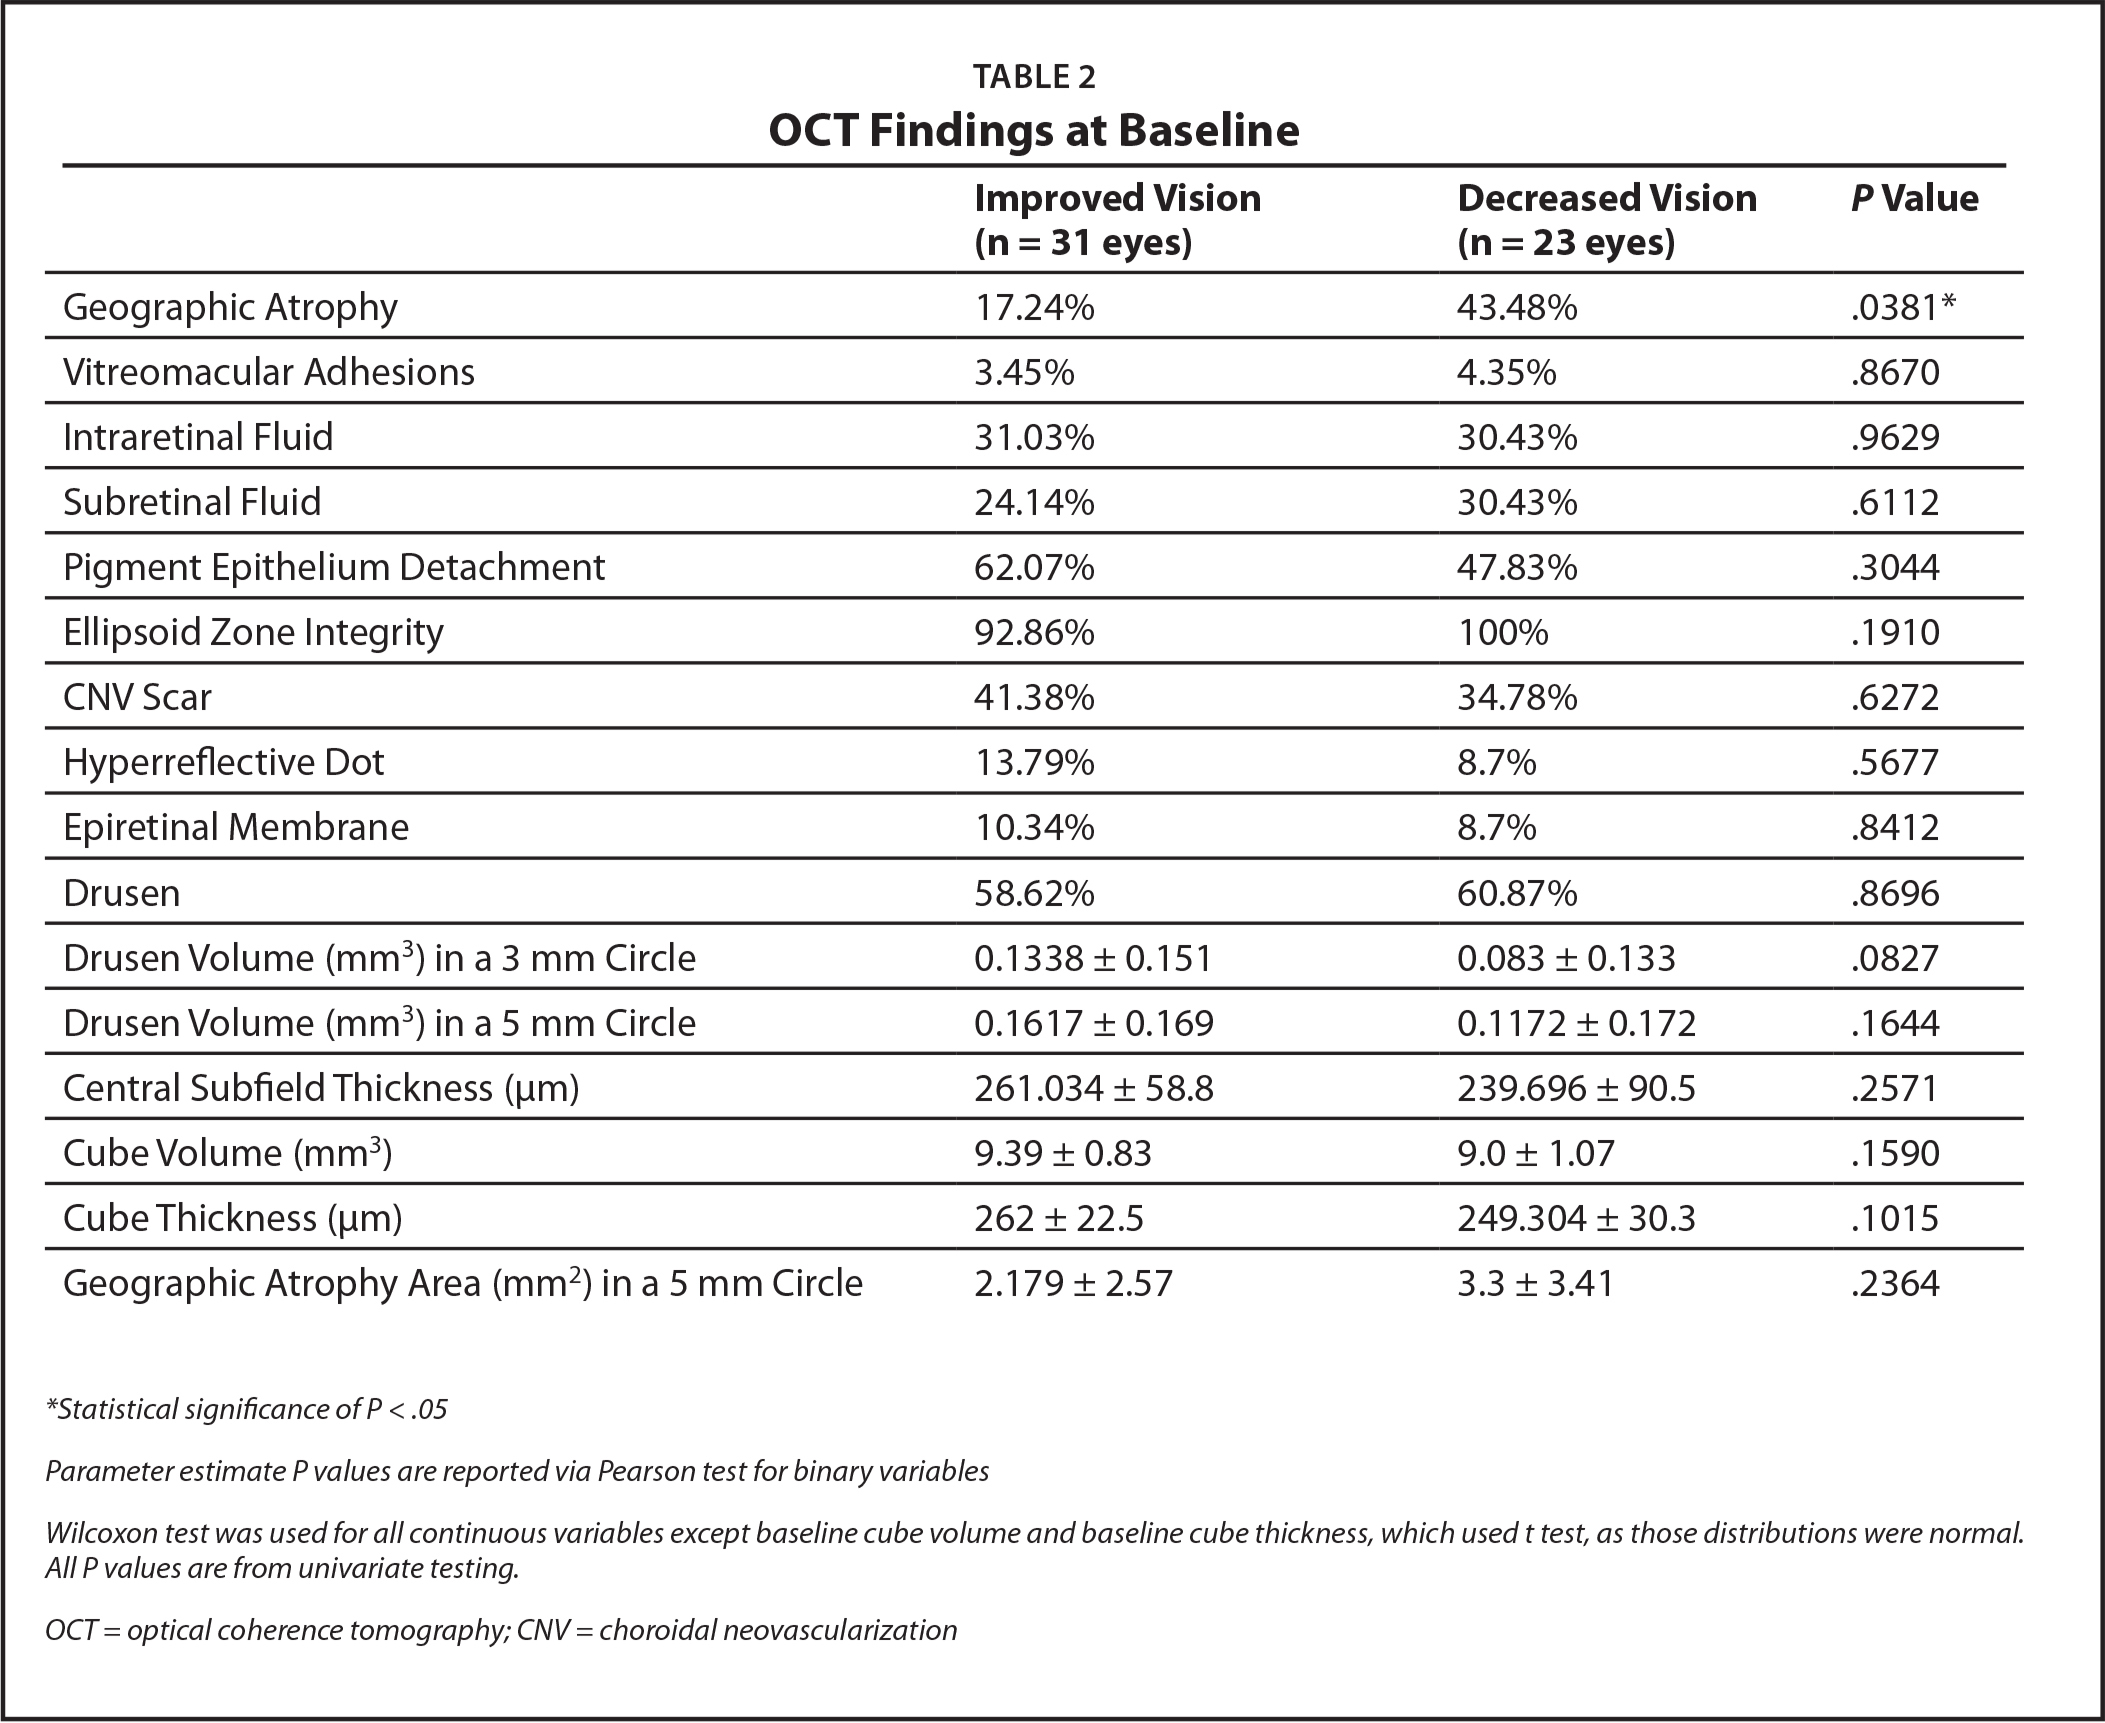 OCT Findings at Baseline